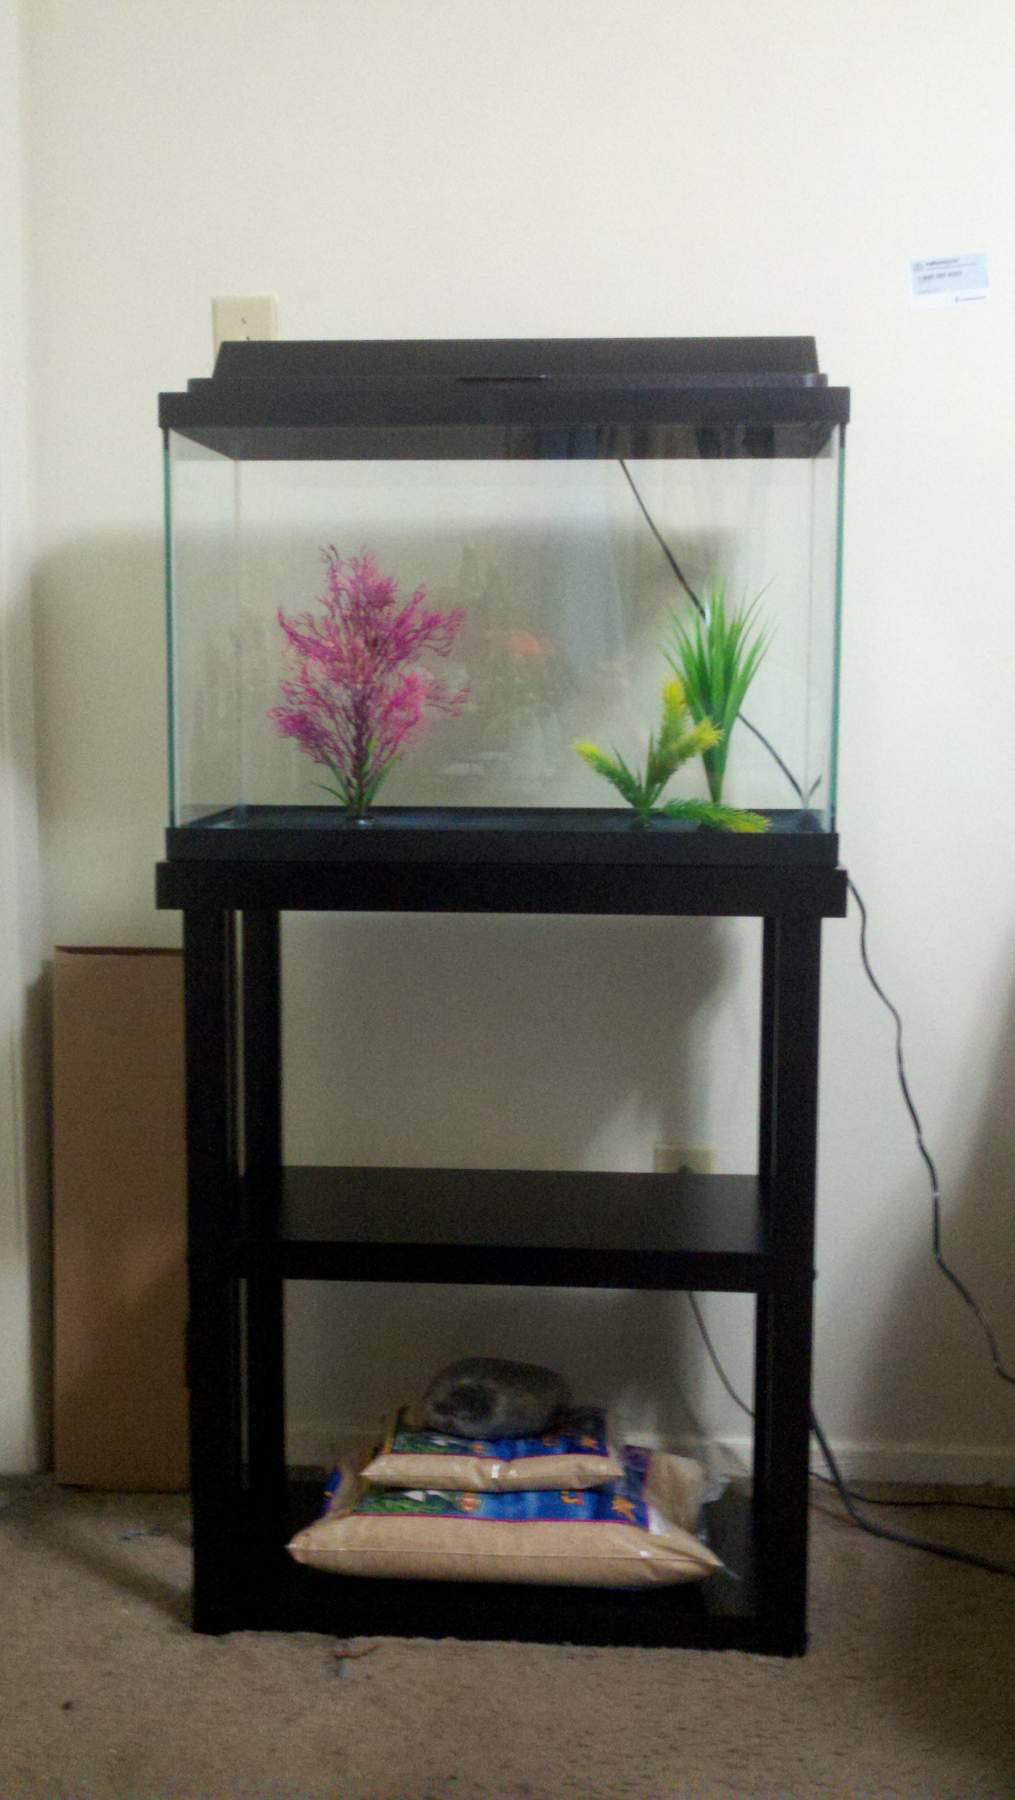 Fish tank tv stand -  10 Gallon Fish Aquarium Stand